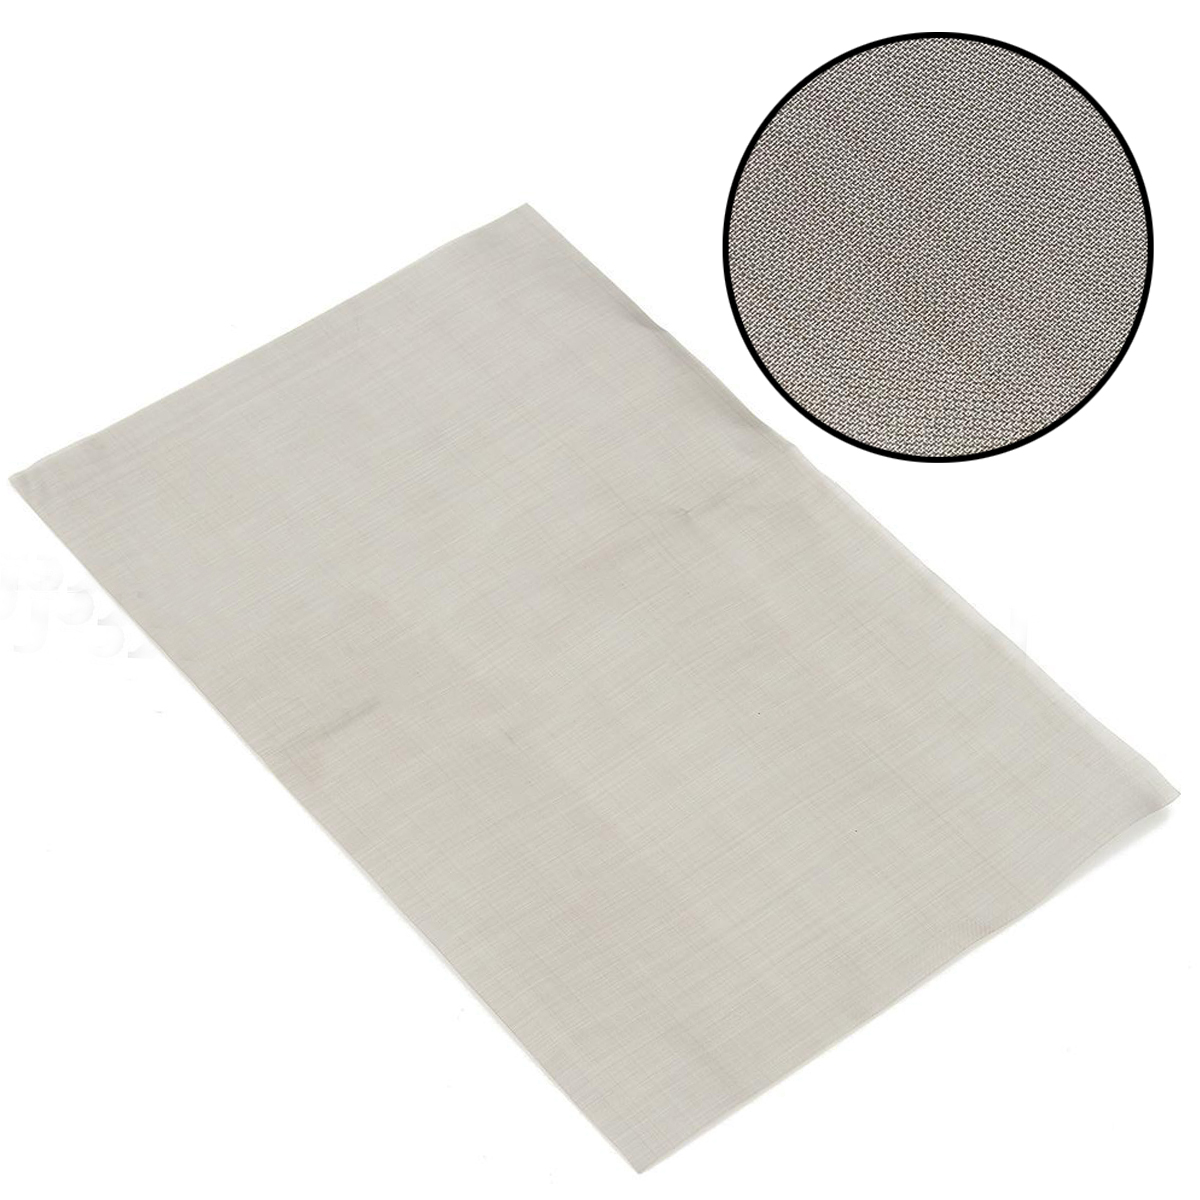 1pc Durable Silver 180/300/325/400 Mesh Woven Wire Mayitr Stainless Steel Filter Woven Wires Sheet Filter for Mining 30cm*20cm 1 roll stainless steel woven wire cloth screen filter 120 mesh 125 micron 30x90cm with corrosion resistance